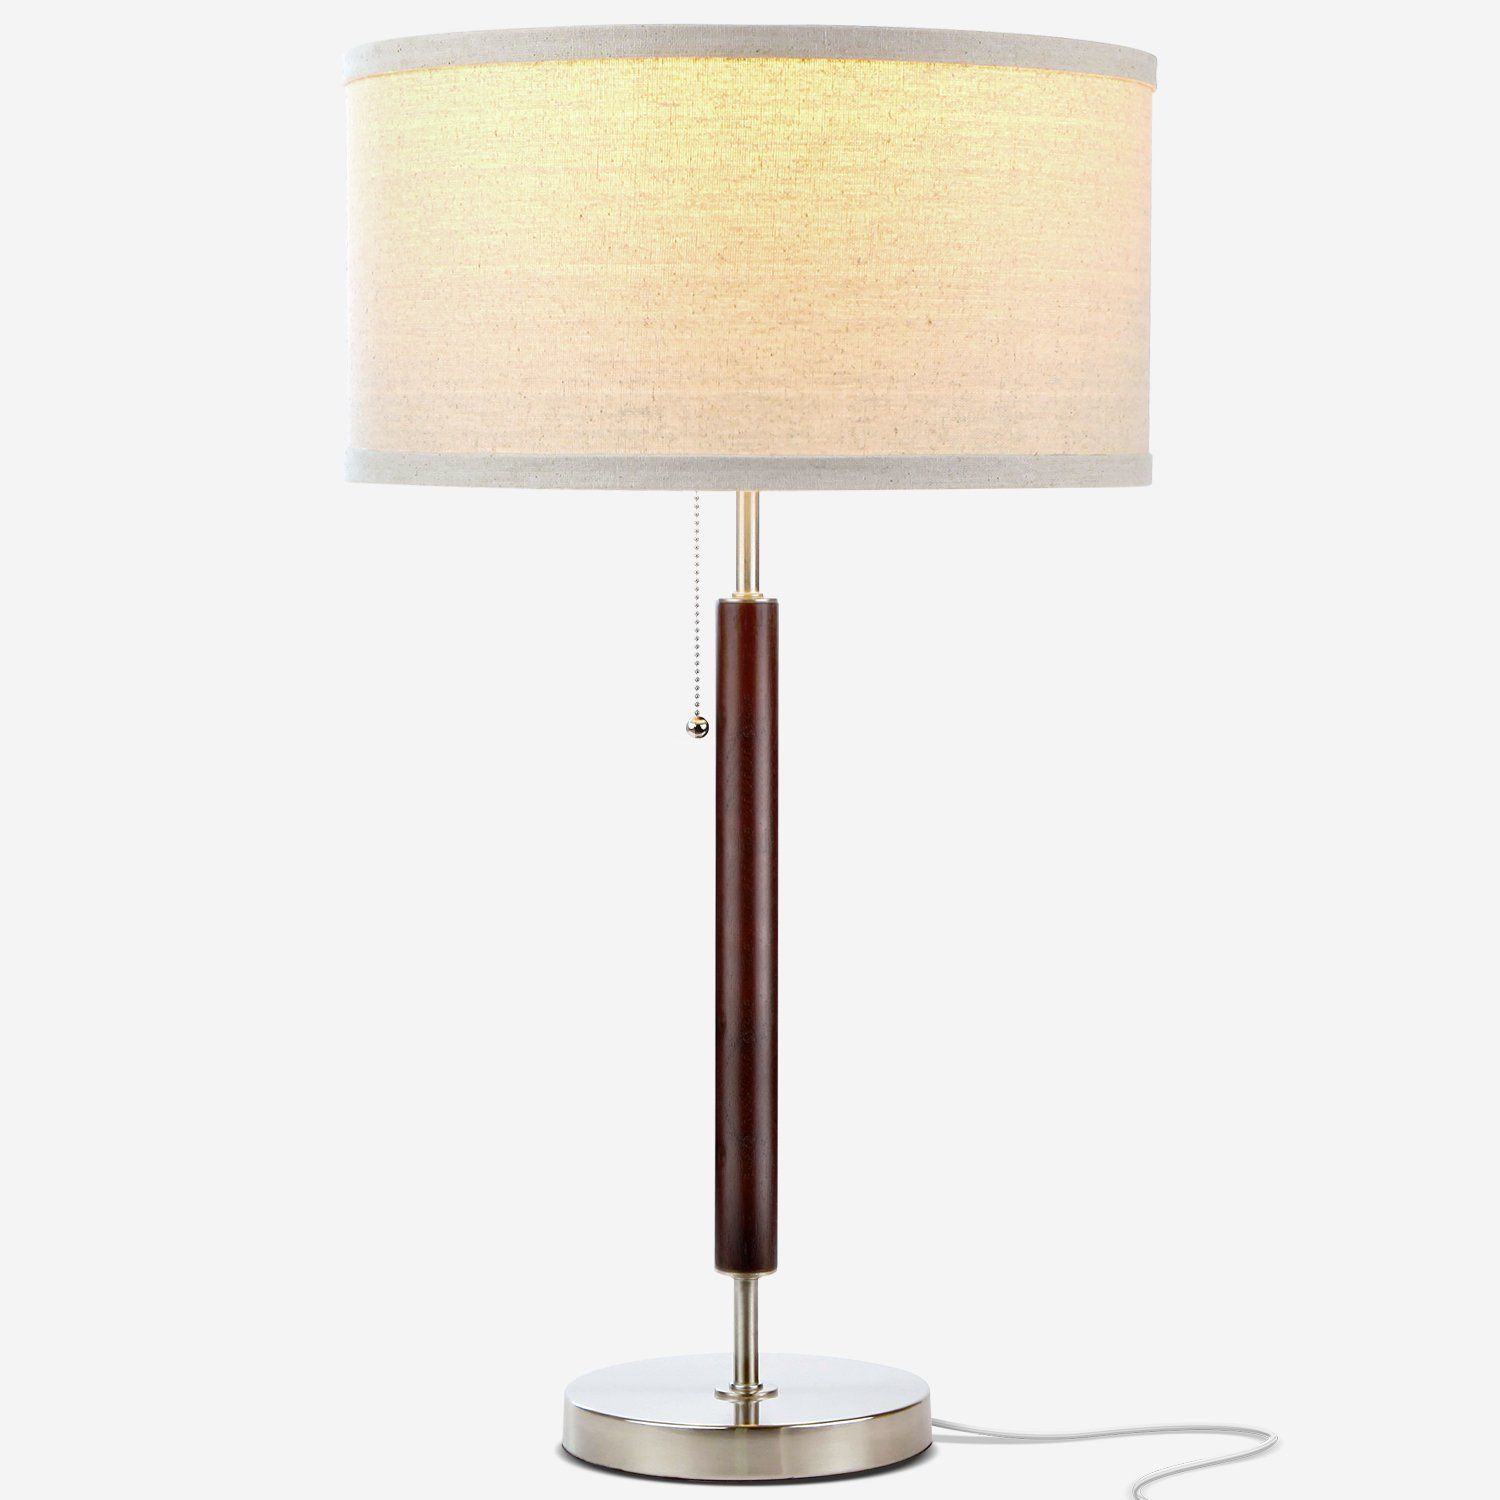 Carter Desk - LED Side Table, Nightstand & Desk Lamp - Wood Finish